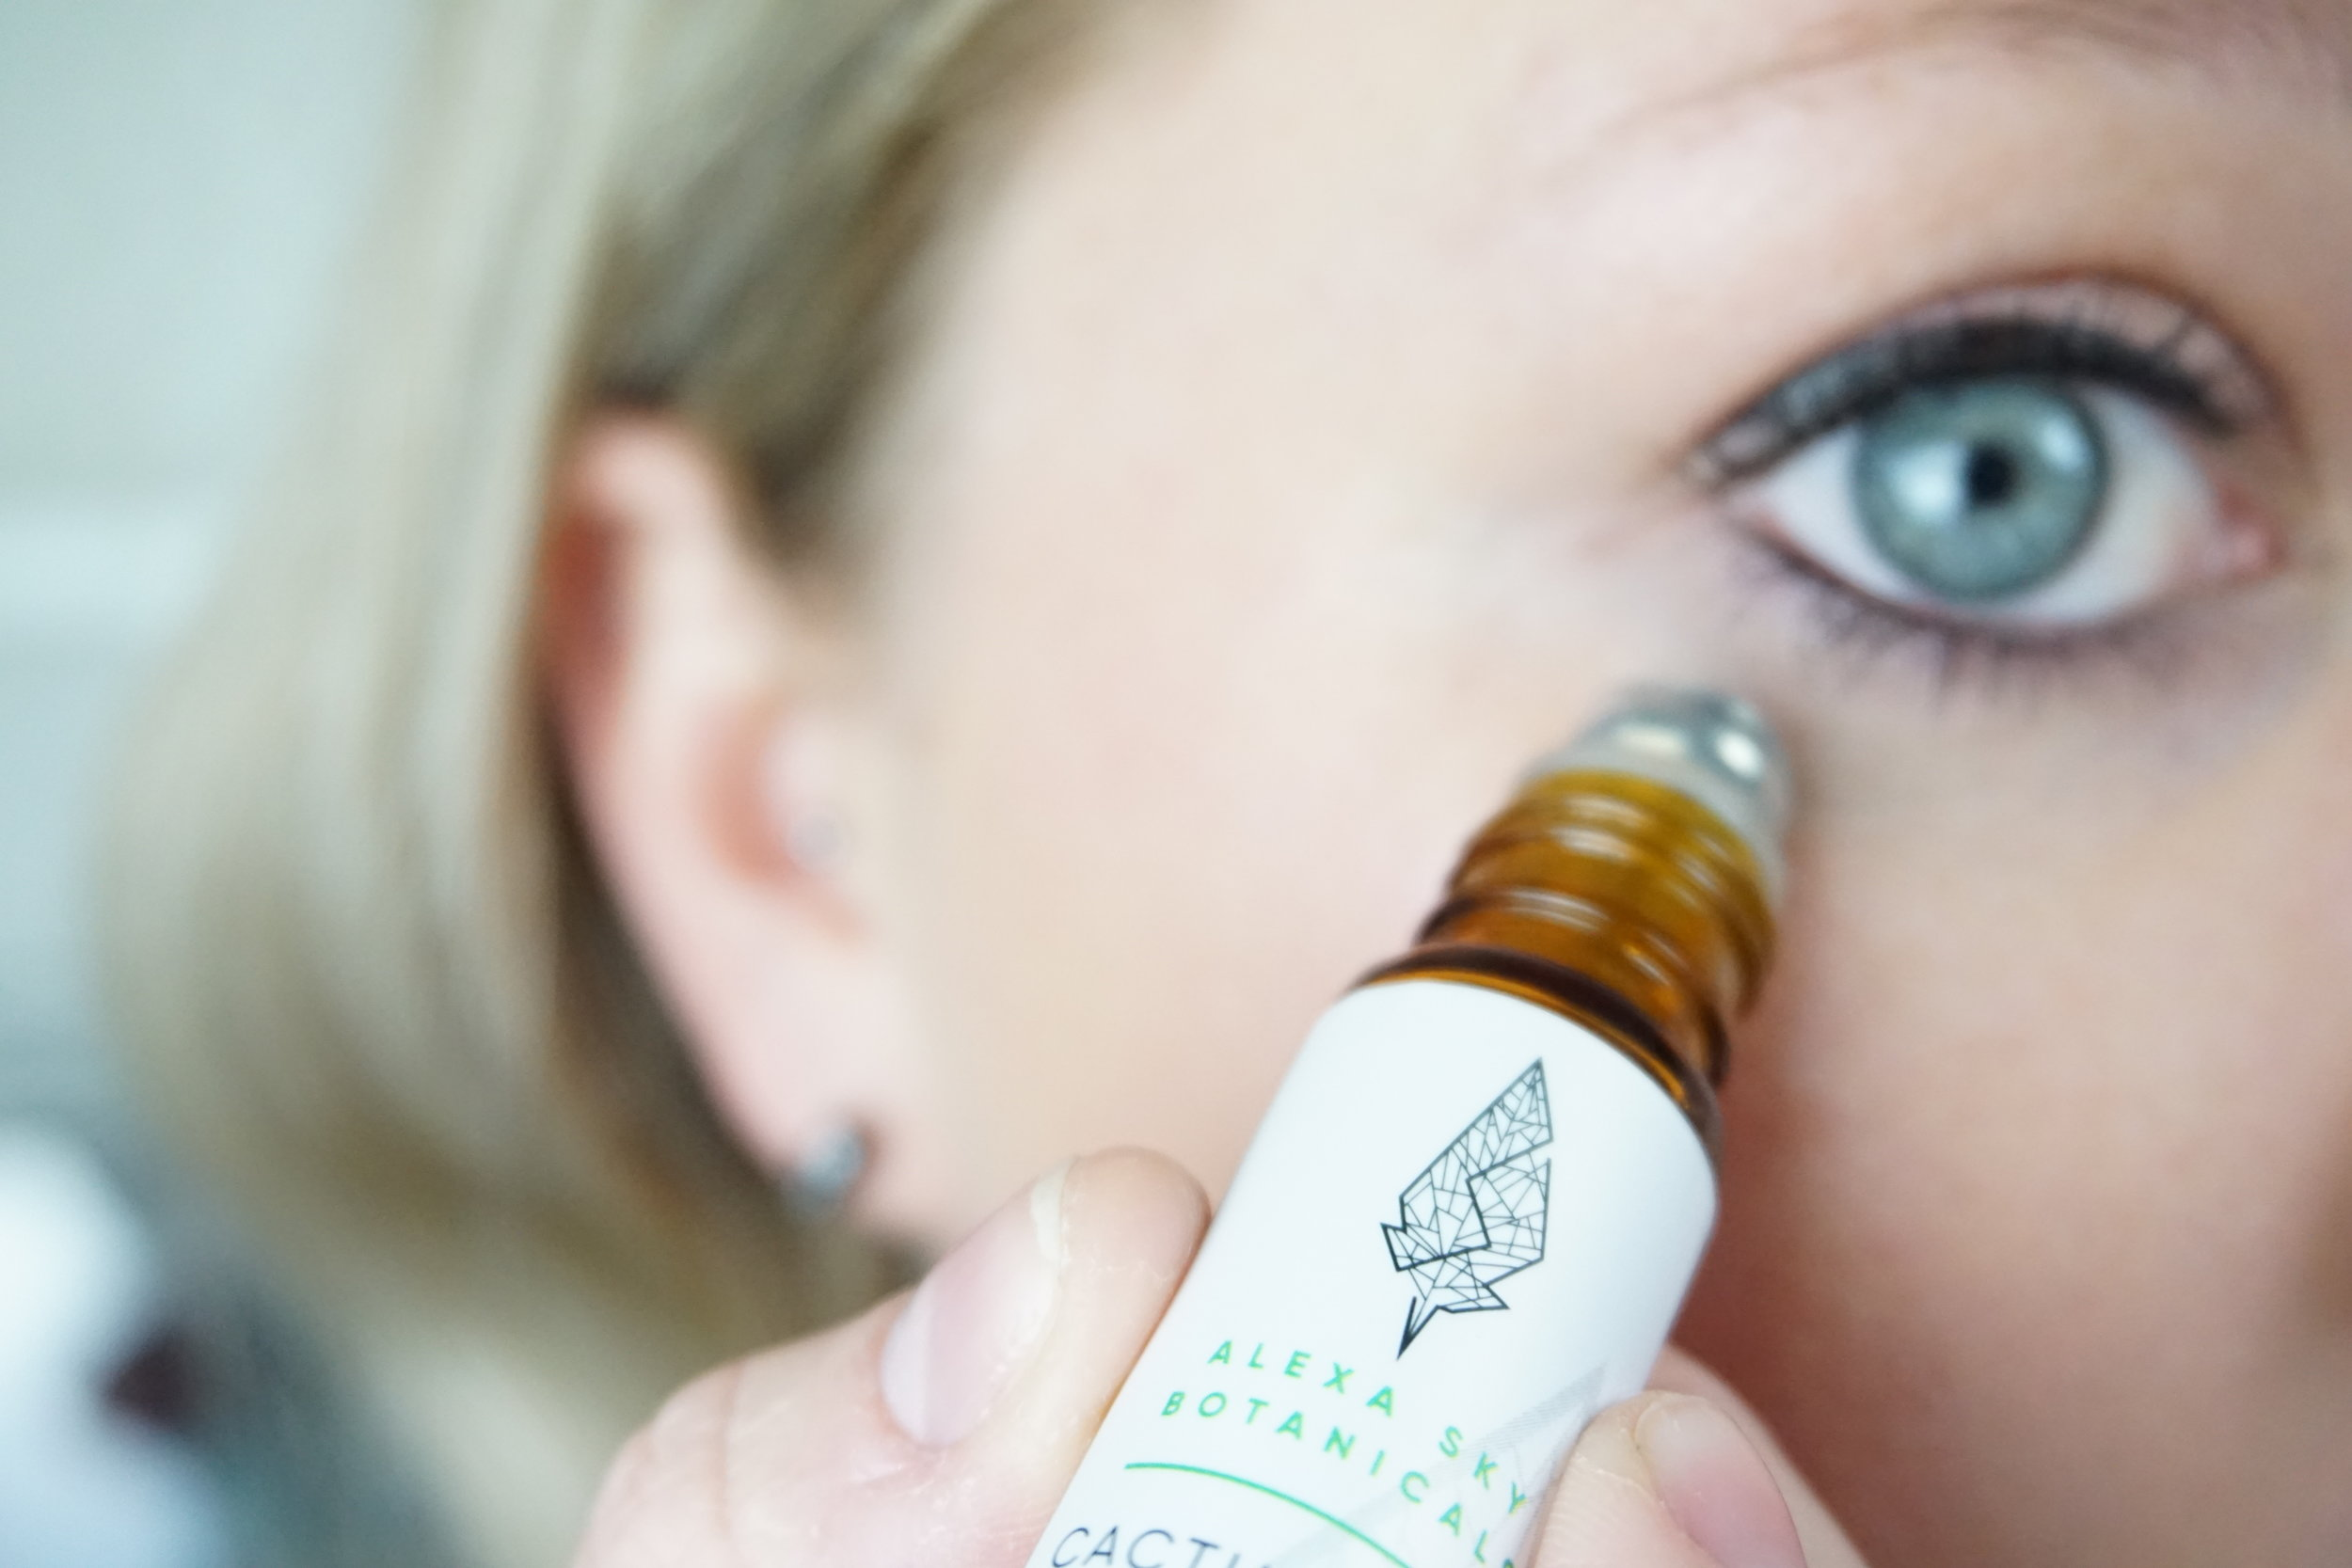 The skin underneath the eye is very, very delicate and needs to be treated right, so anti-ageing properties from Cacti-style fruits are ideal. Tip: I like to pop this on before bed, so it has all night to get to work!